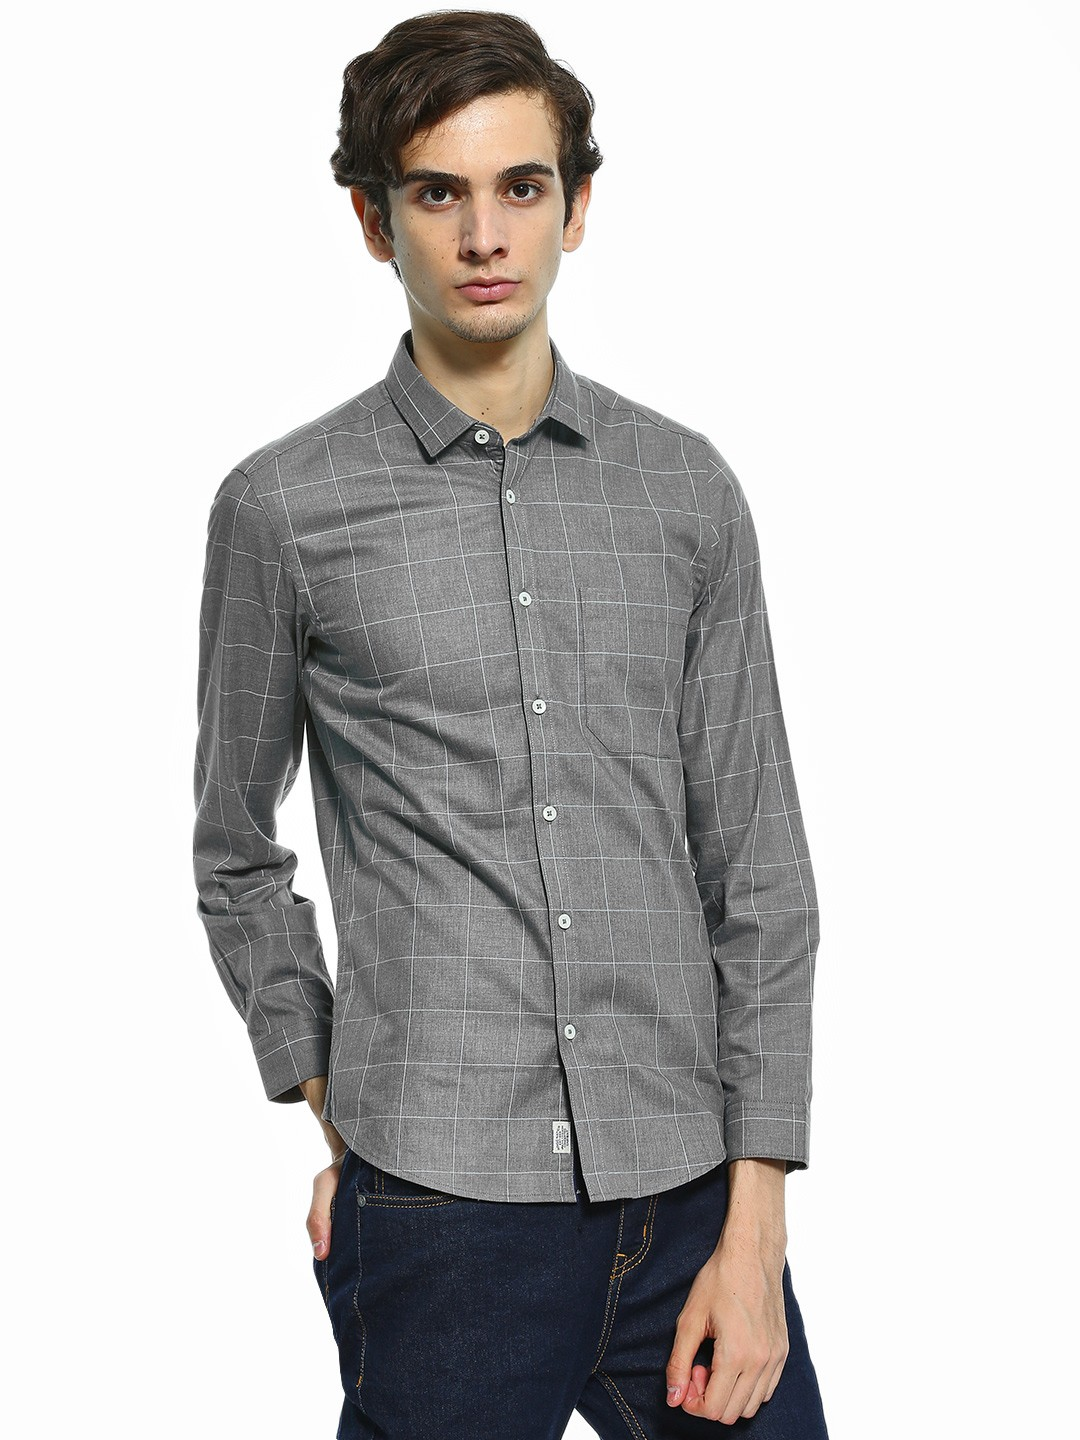 Indigo Nation Grey Windowpane Check Formal Smart Shirt 1